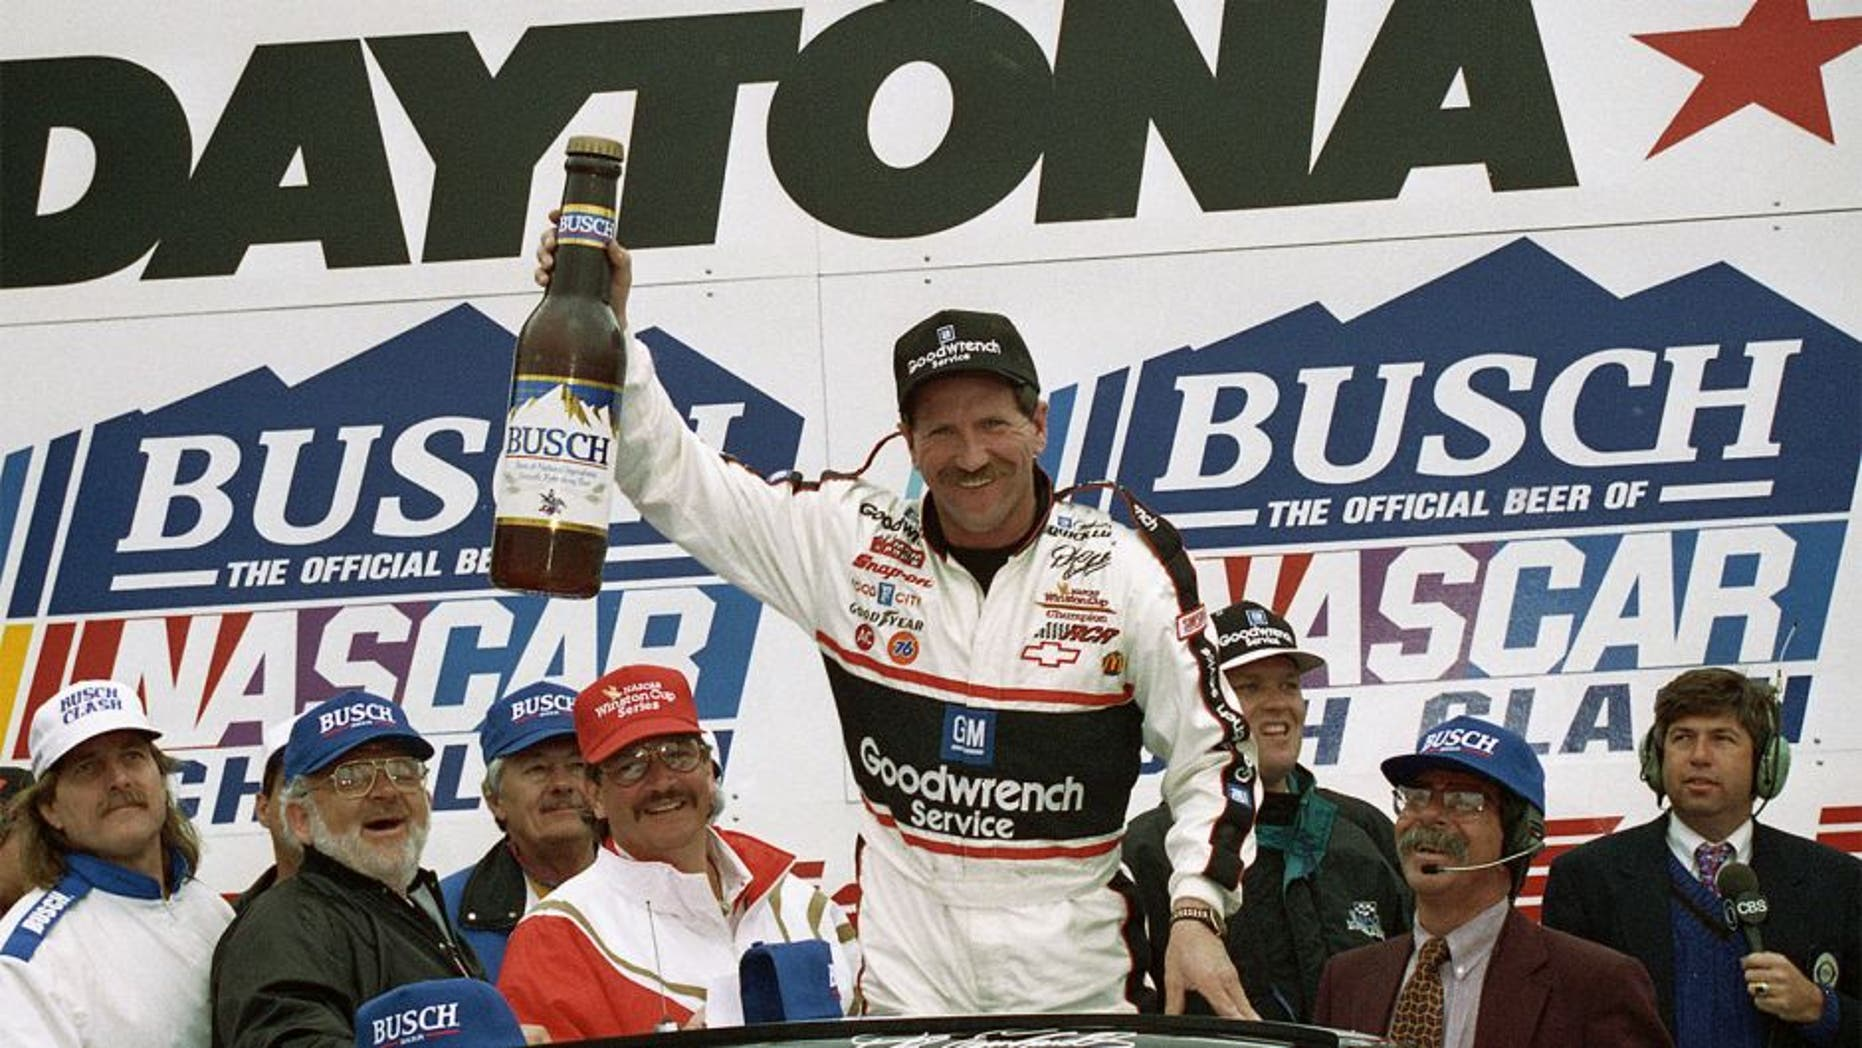 DAYTONA BEACH, FL - FEBRUARY 12, 1995: Dale Earnhardt started 9th and won the 1995 Busch Clash at Daytona. He won $57,500. (Photo by ISC Archives via Getty Images)